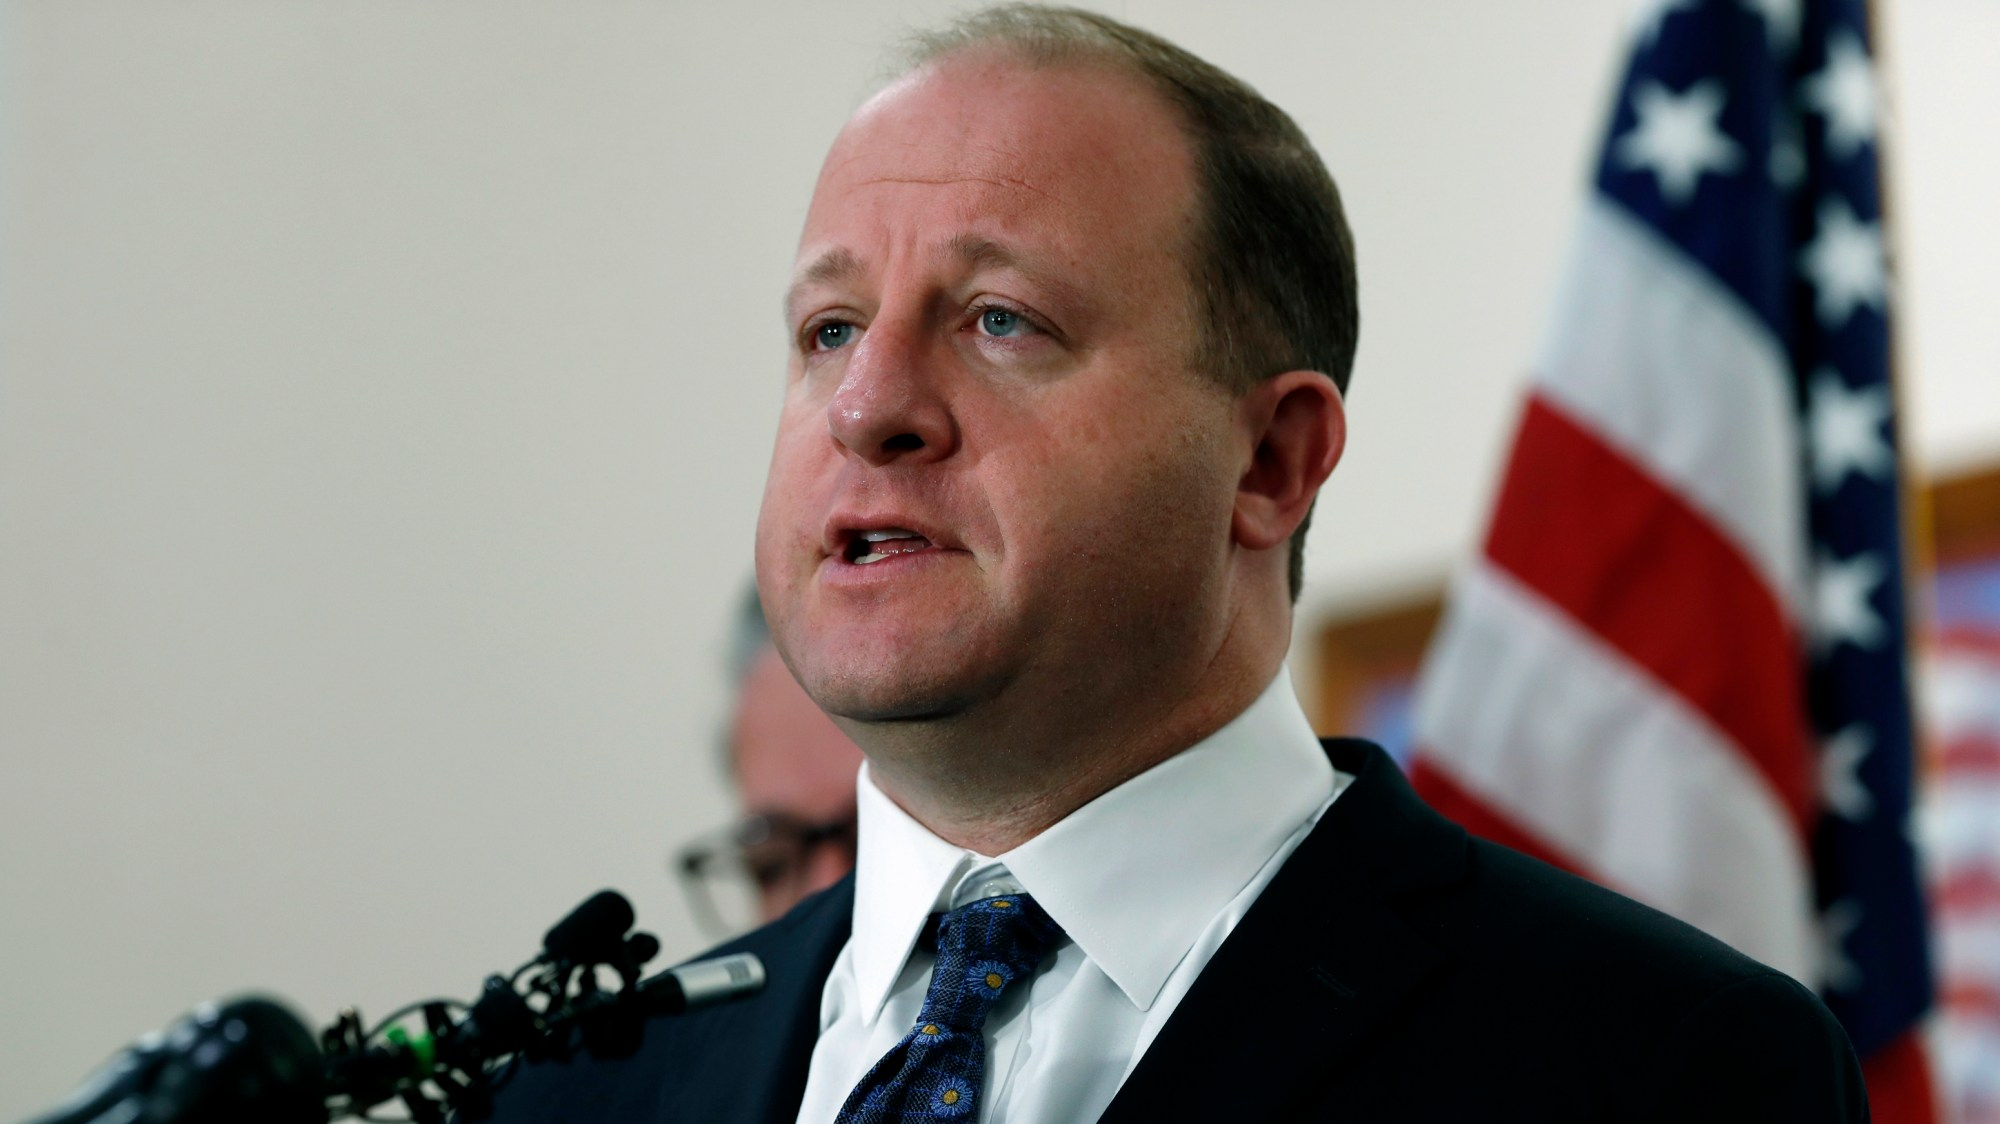 FILE - In this May 8, 2019, file photo, Colorado Gov. Jared Polis responds to a question about a shooting at a charter school during a news conference in Highlands Ranch, Colo. (AP Photo/David Zalubowski, File)